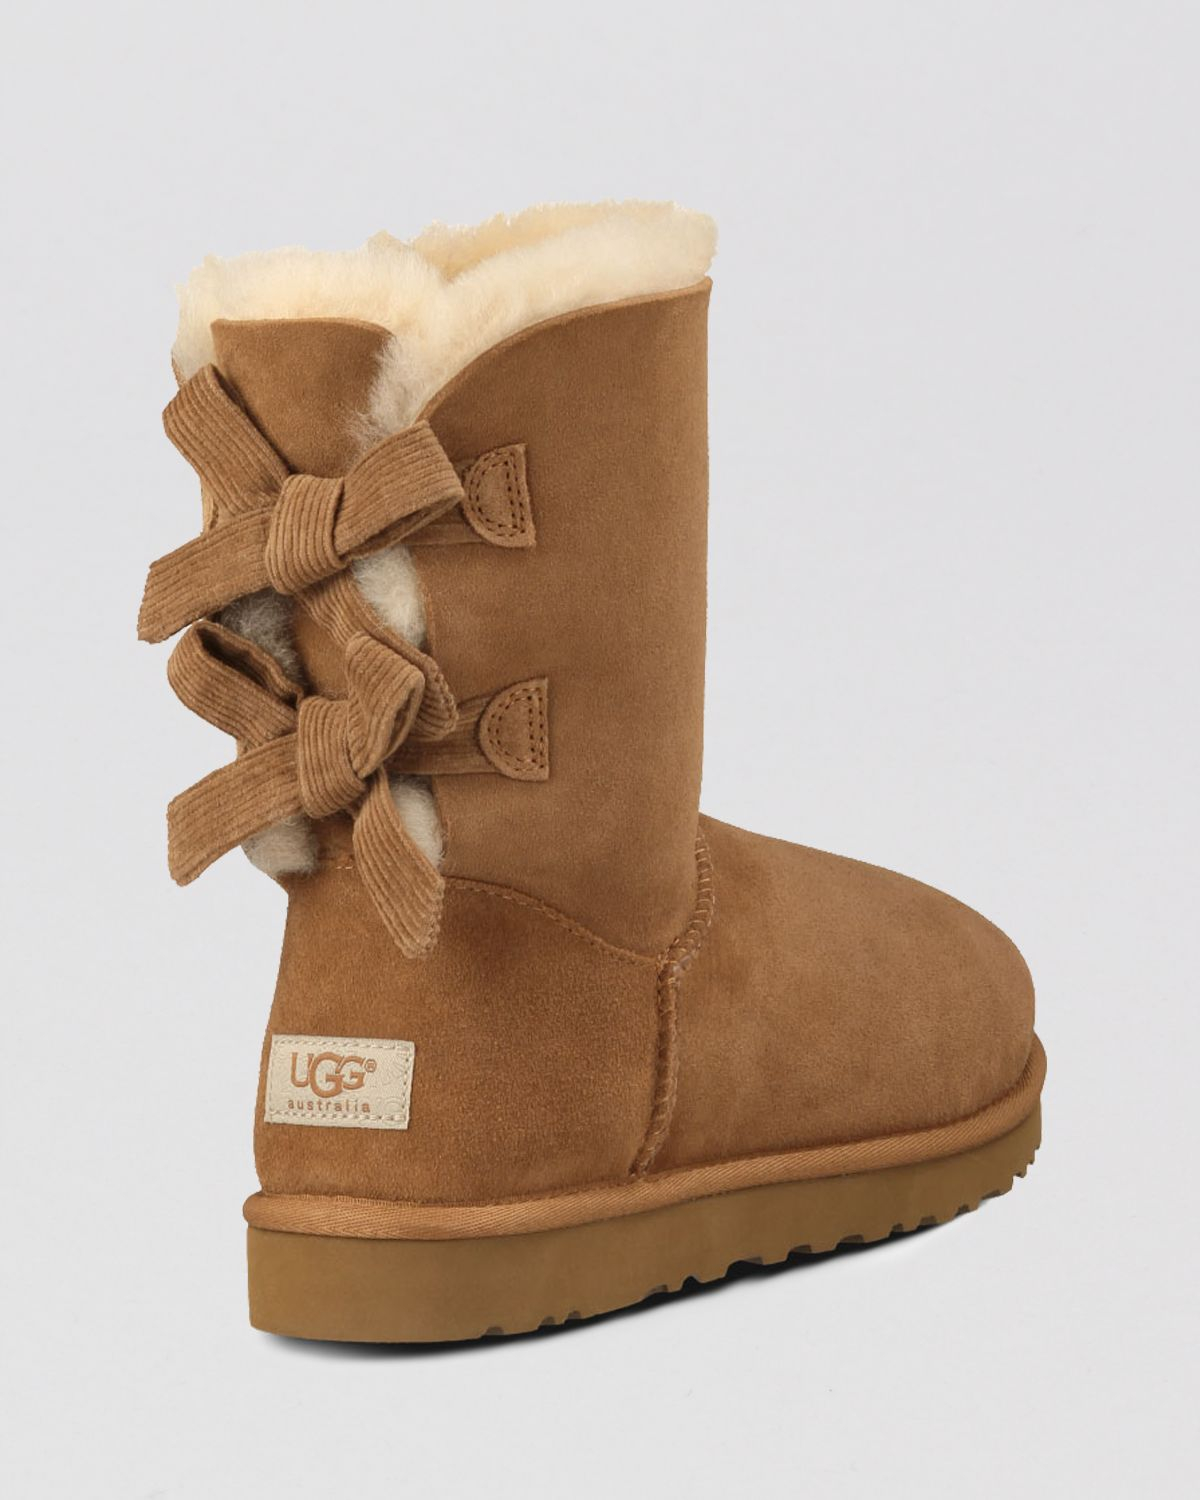 ugg boots with bows - photo #18